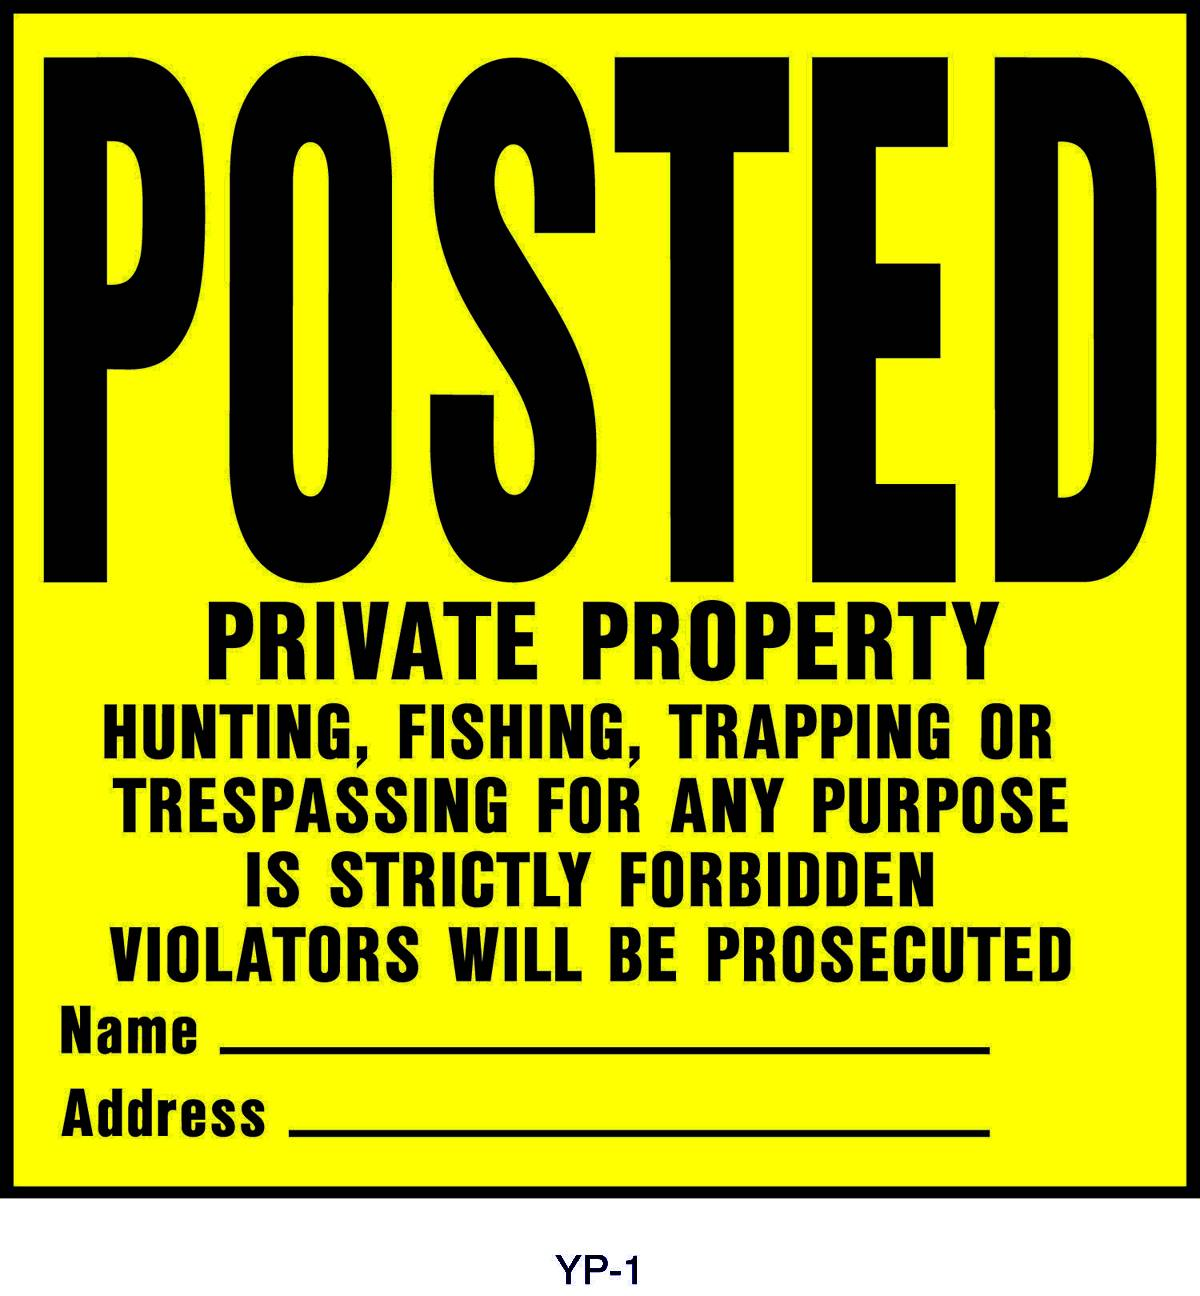 Posted Private Property Property Sign